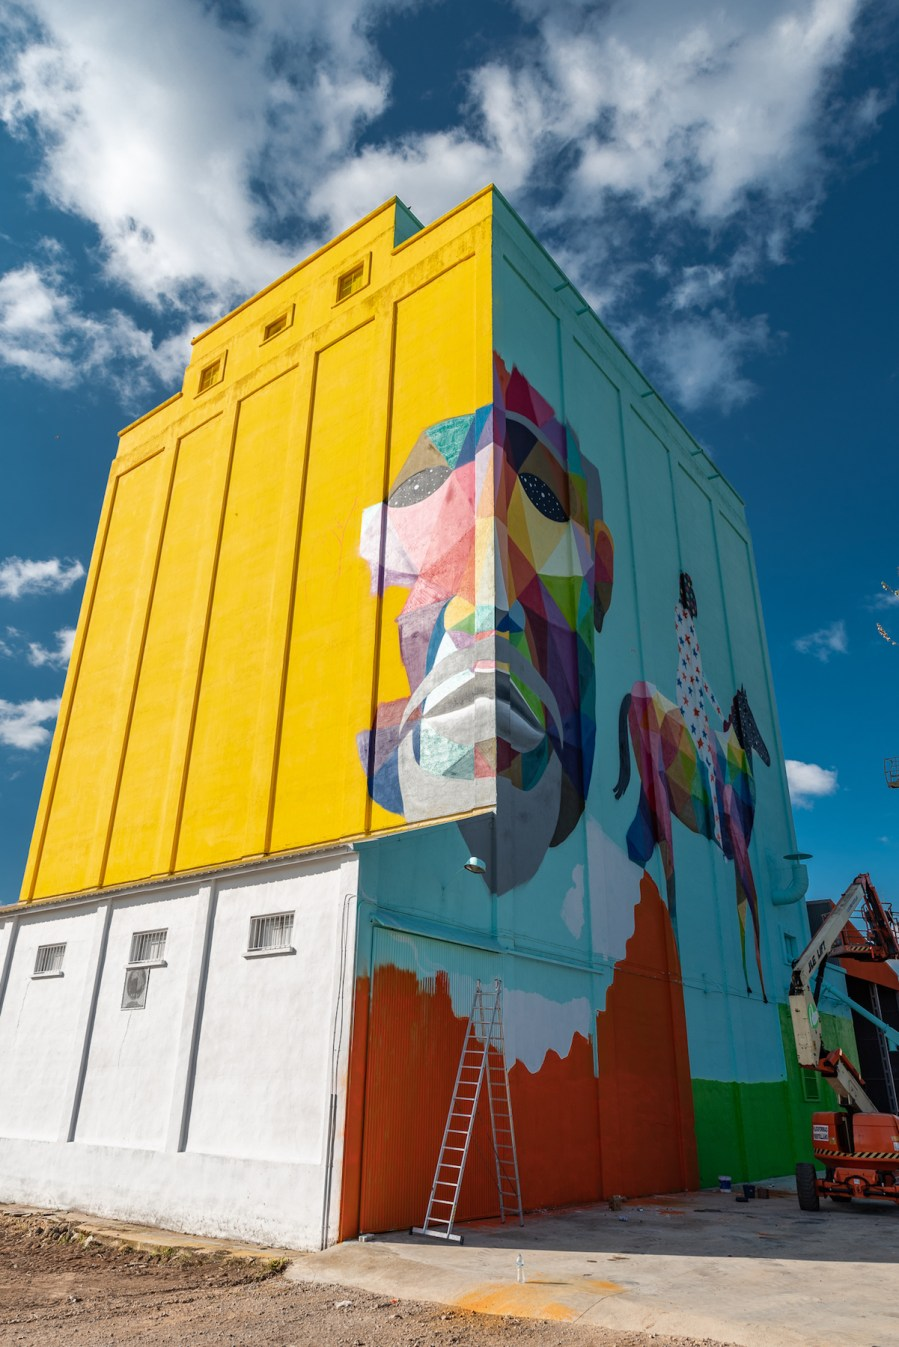 Okuda-San-Miguel-titanes-street-art-silos-Ciudad-Real-pc-ink-and-movement- 1